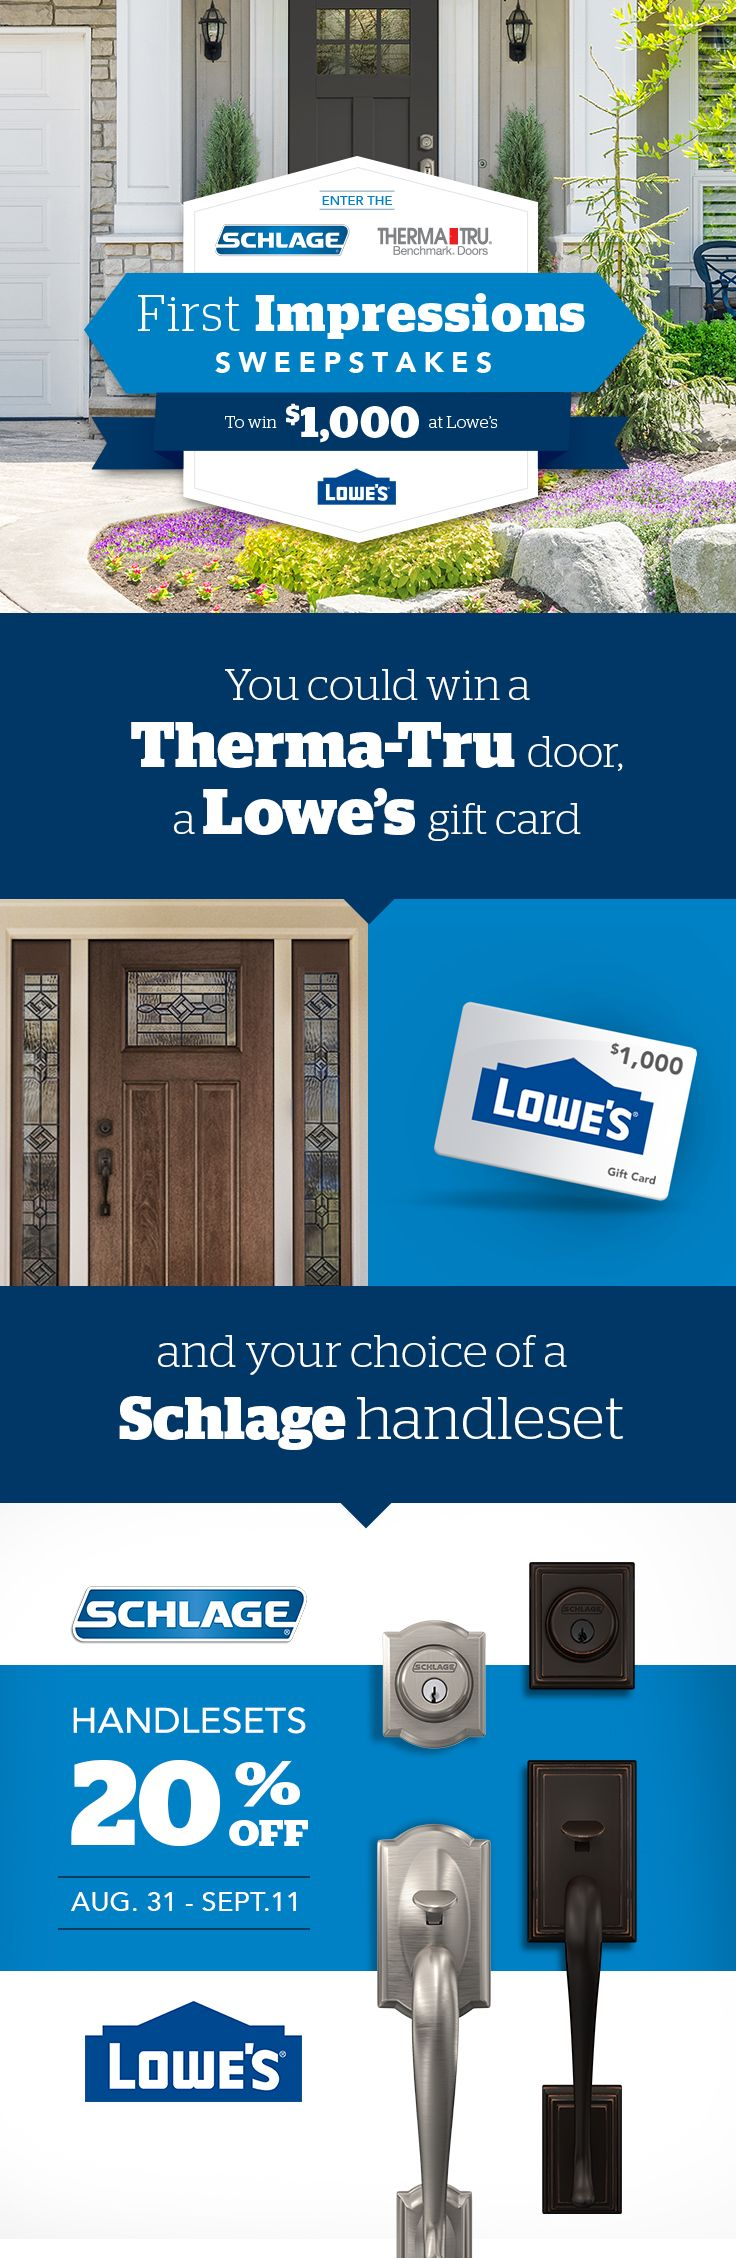 Enter the Schlage and Therma-Tru Doors First Impressions Sweepstakes to win a Schlage handleset, a $1,000 Lowe's gift card and a Therma-Tru door. For a limited time, also get 20% off all Schlage handlesets at Lowe's.